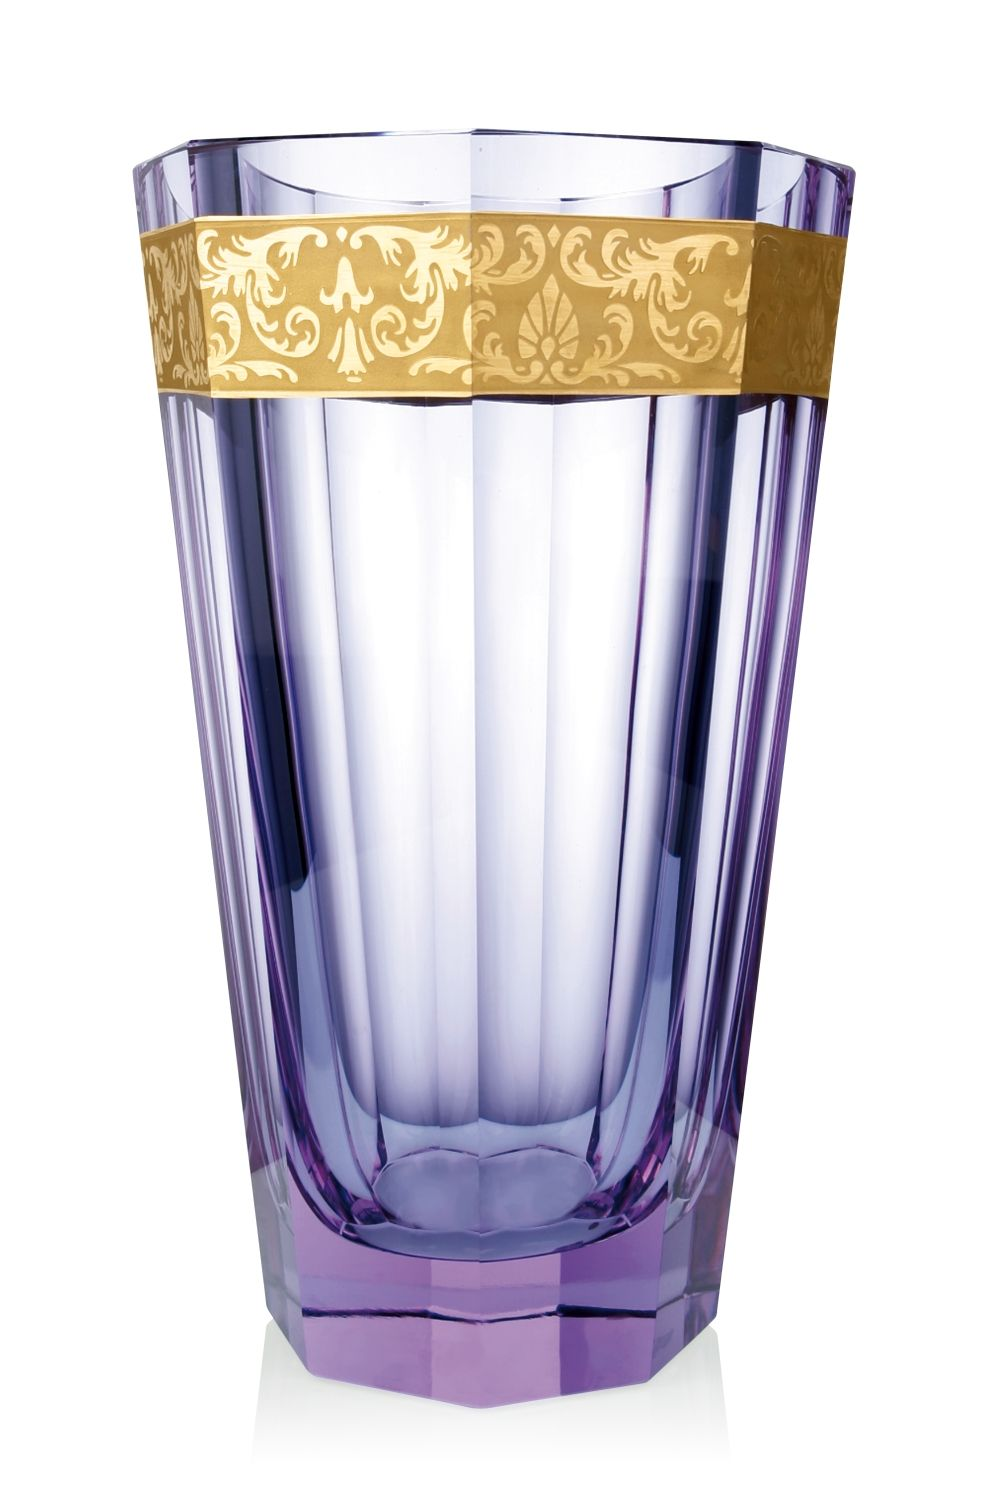 Purity 626 hand cut and gilded vase moser glassworks luxury purity 626 hand cut and gilded vase moser glassworks luxury bohemian crystal glass reviewsmspy